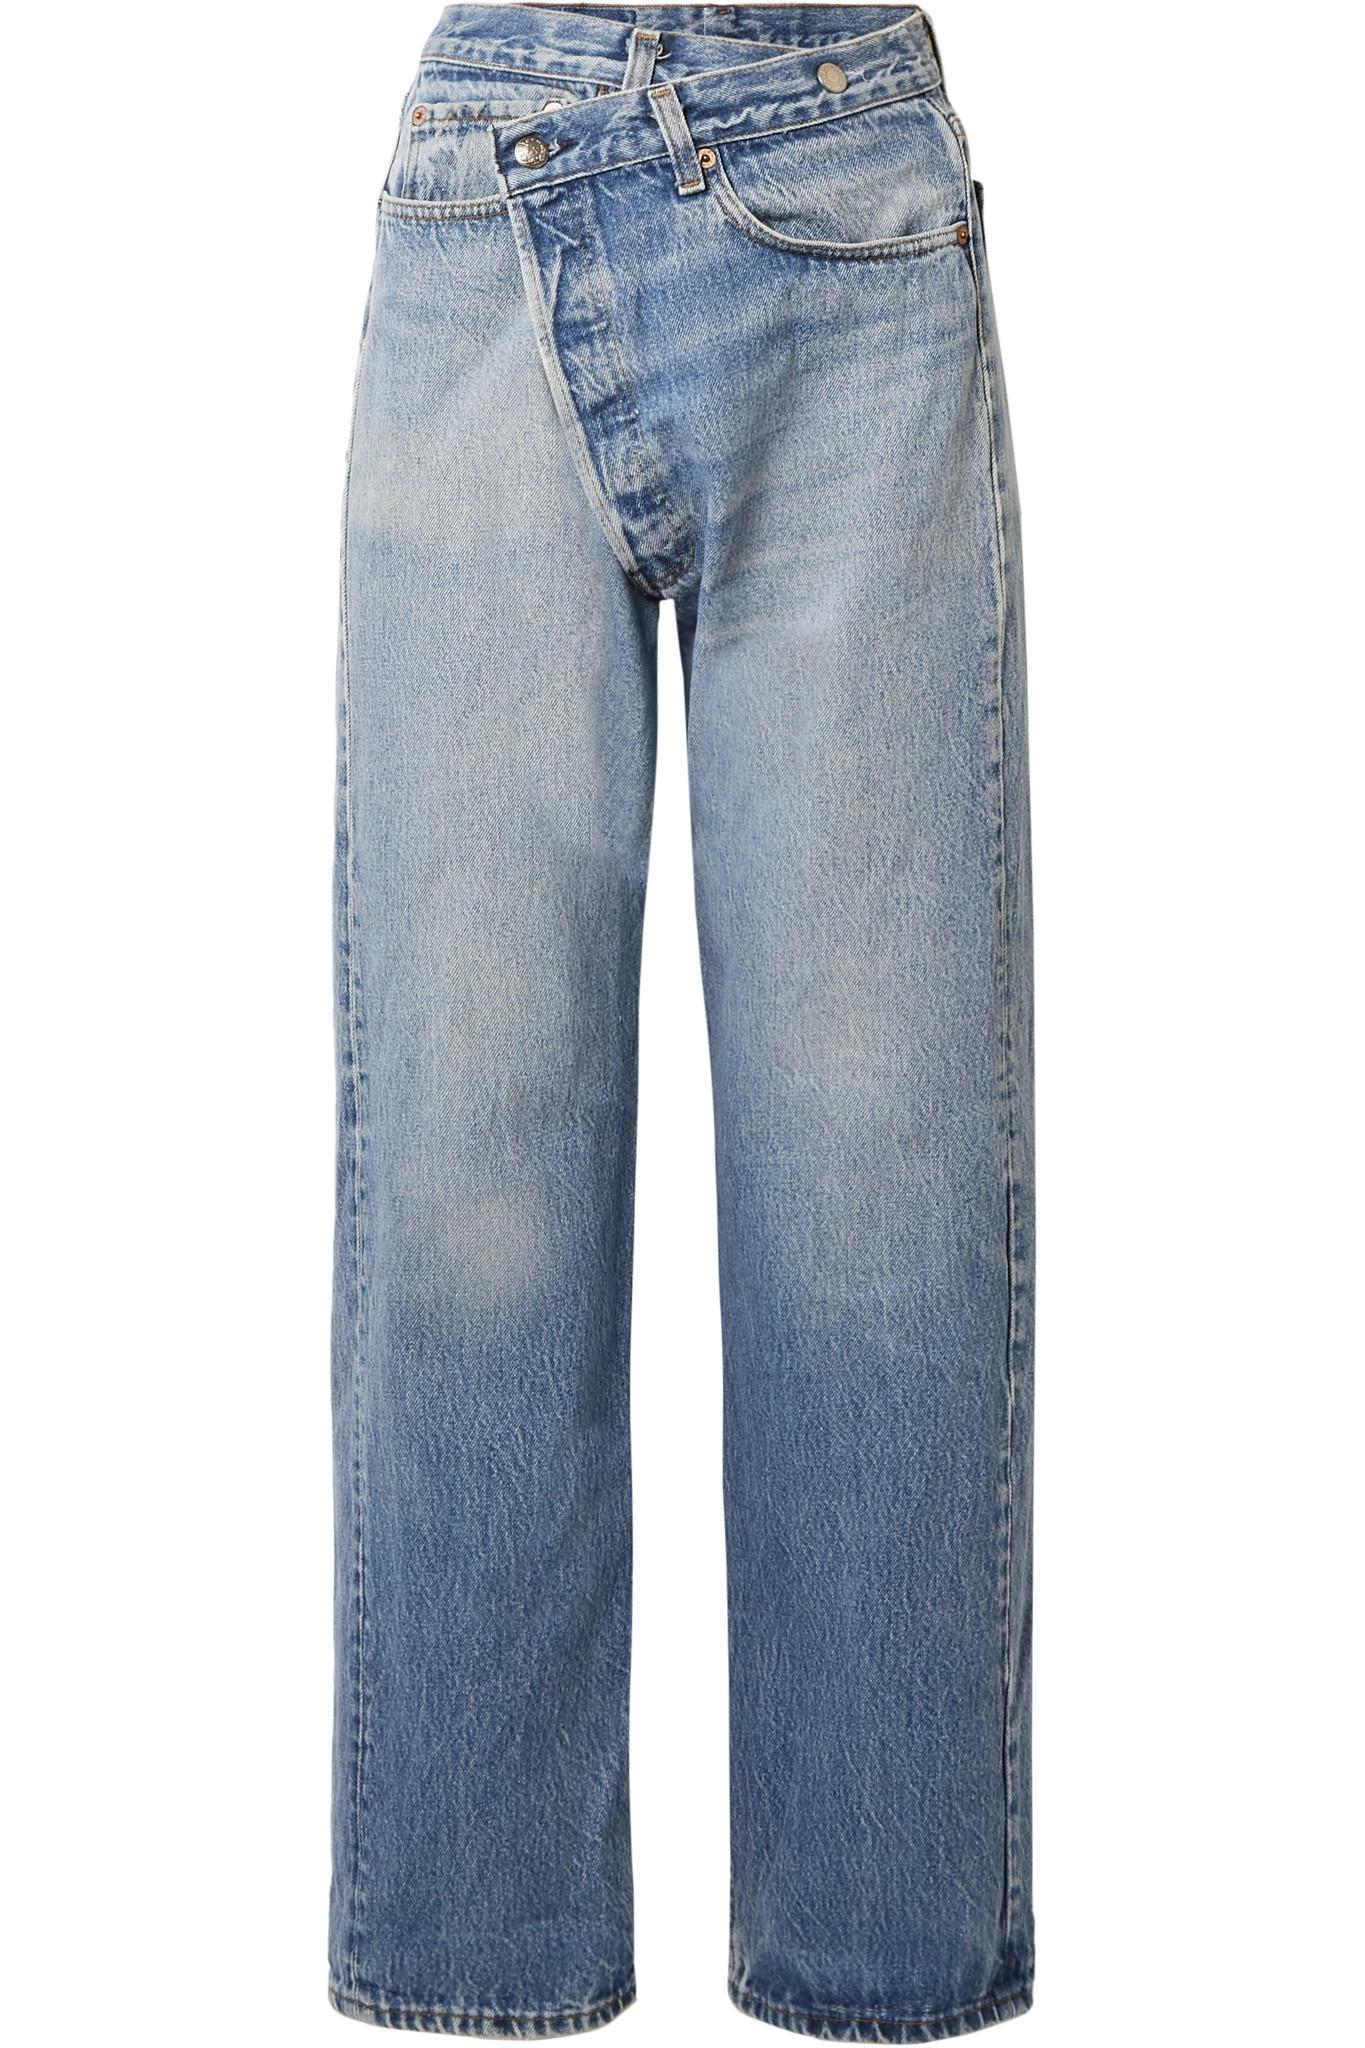 Distressed Women Jeans